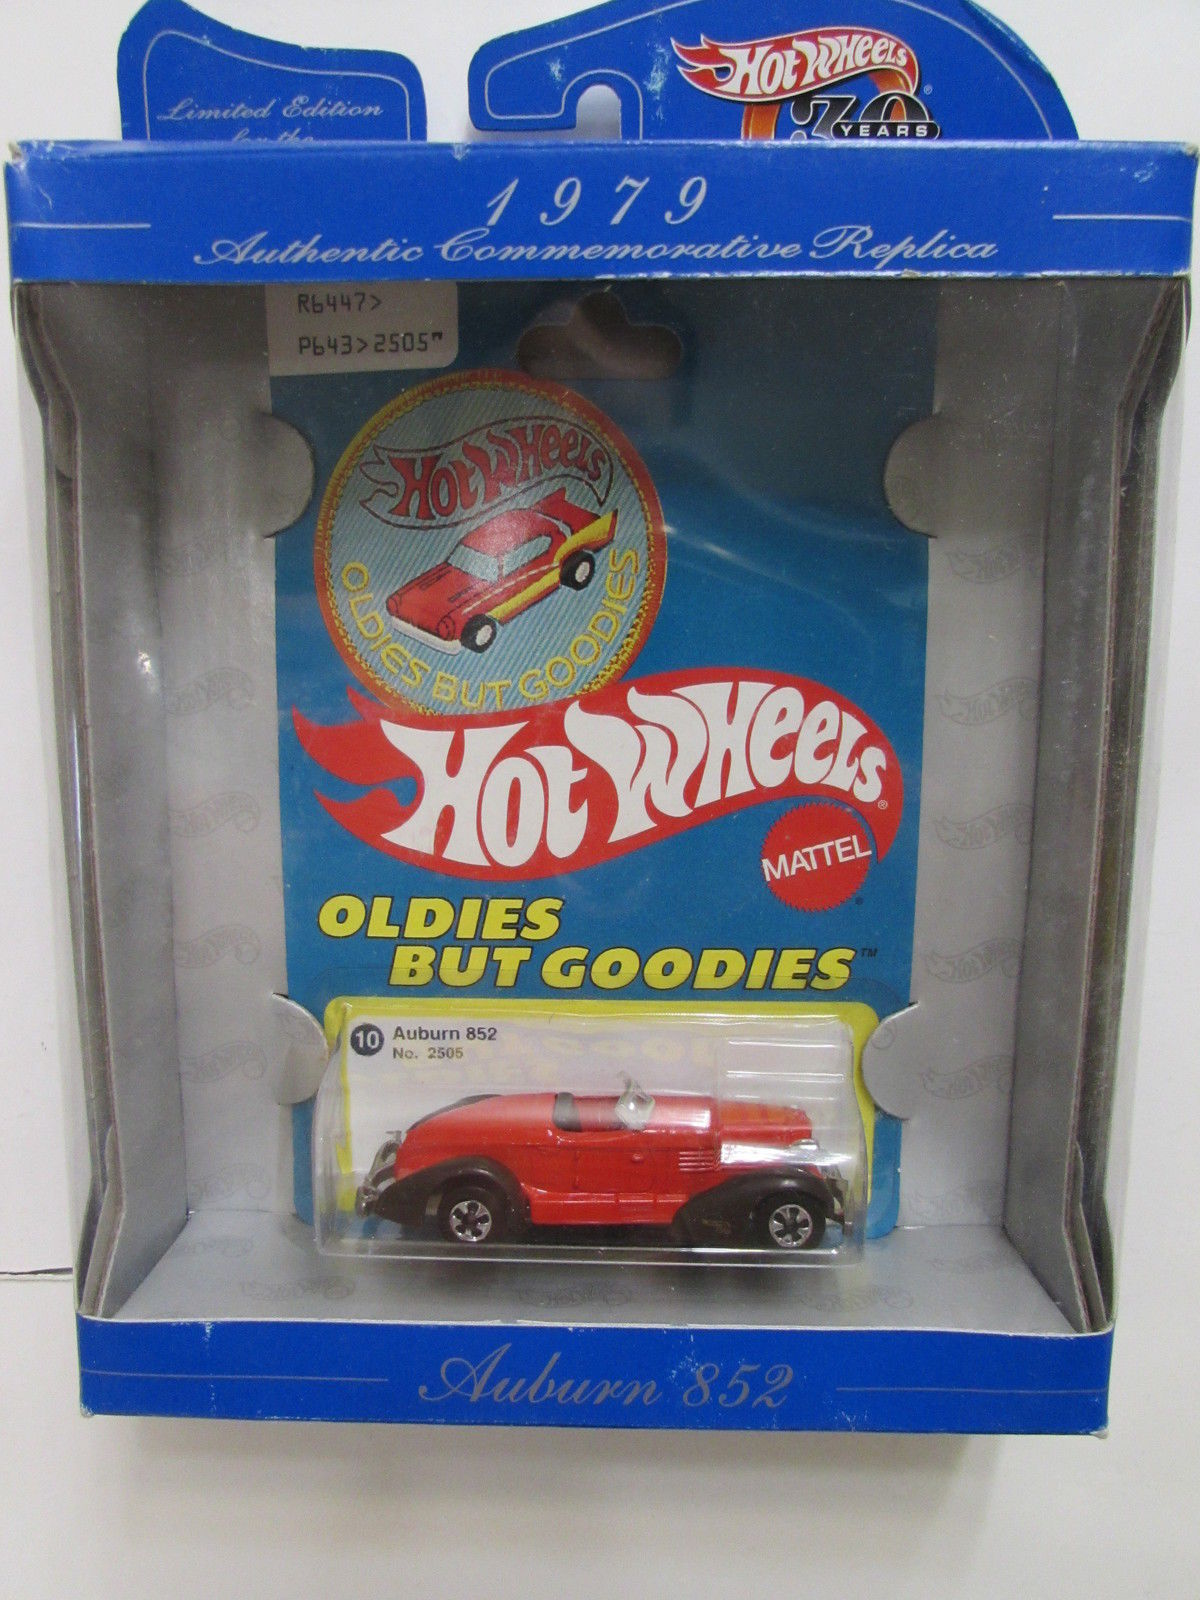 hot wheels oldies but goodies auburn 852 #10 [0006229] - $4.19